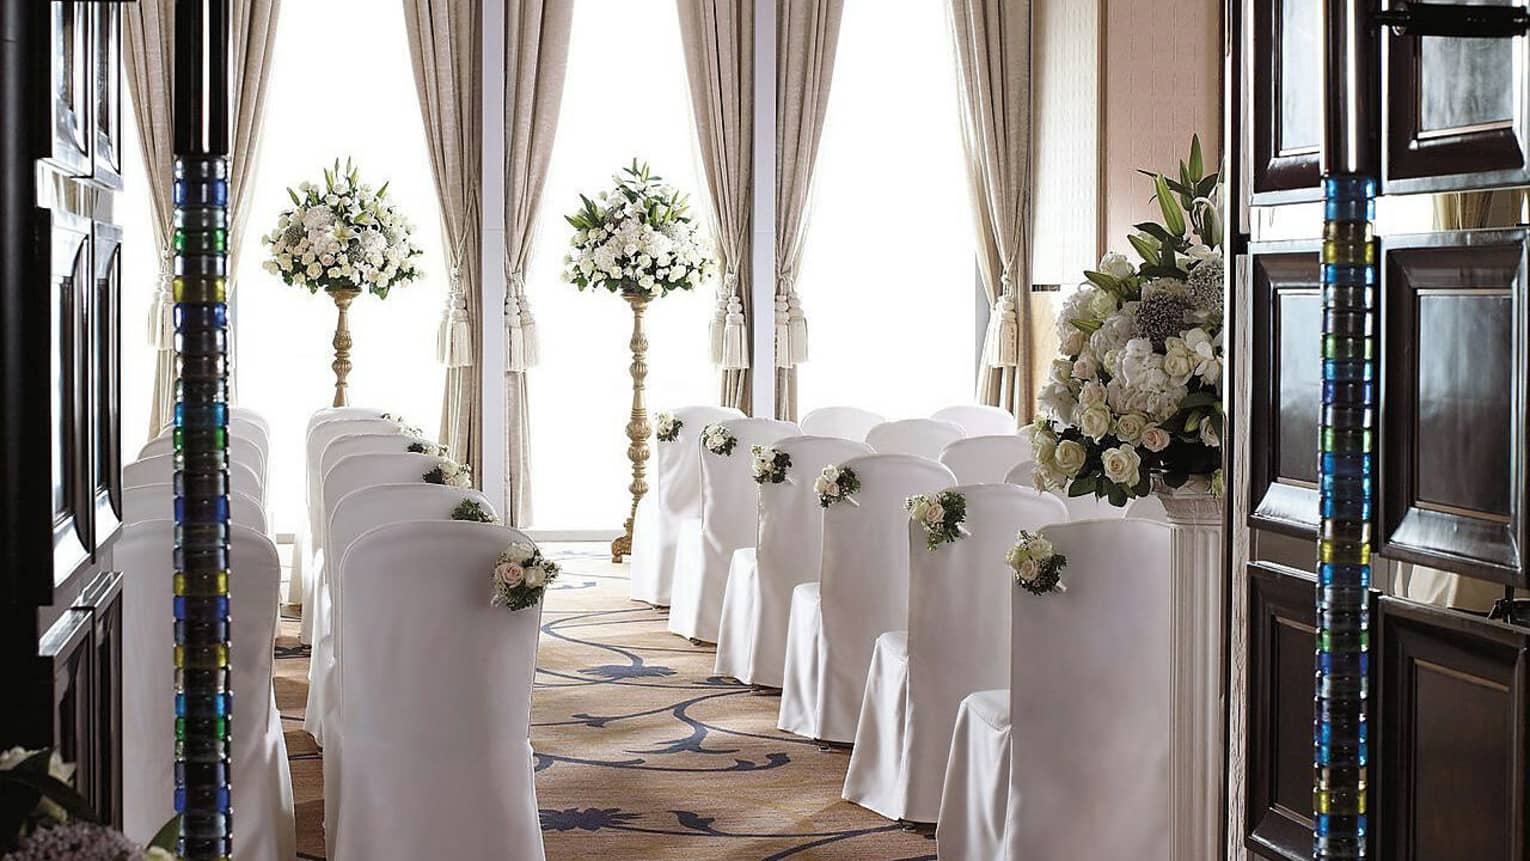 Ballroom wedding ceremony, rows of chairs with white linens face sunny window